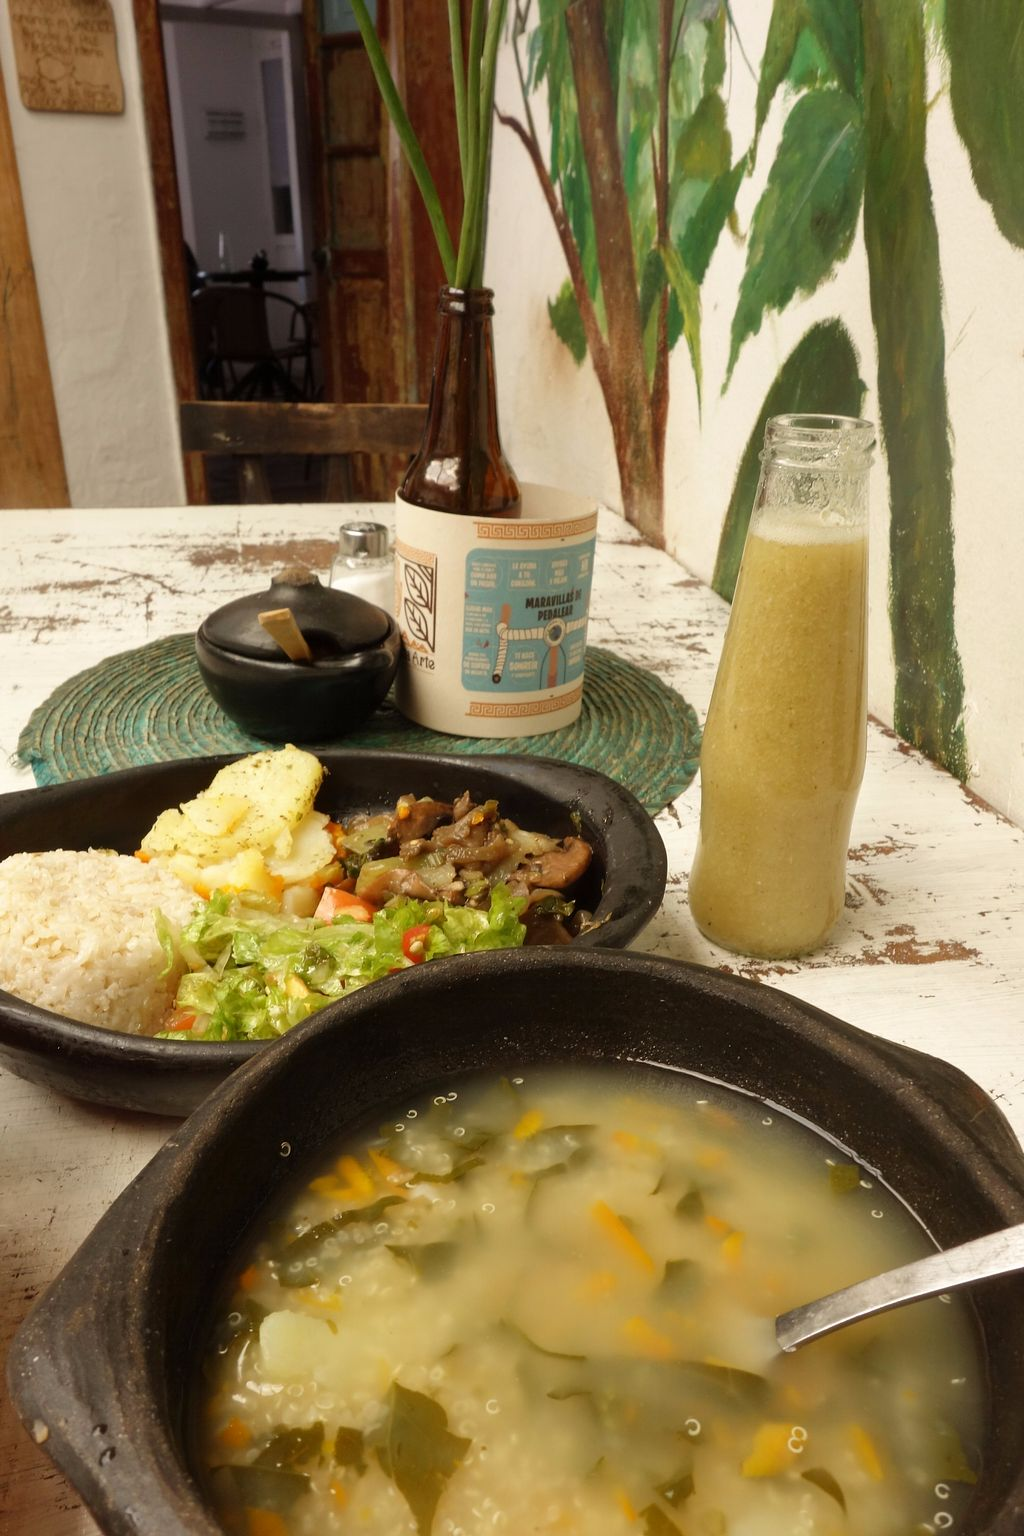 """Photo of Nativo  by <a href=""""/members/profile/Eepie"""">Eepie</a> <br/>Menu of the day (9.000 pesos). Quinoa soup <br/> August 15, 2017  - <a href='/contact/abuse/image/54950/292957'>Report</a>"""